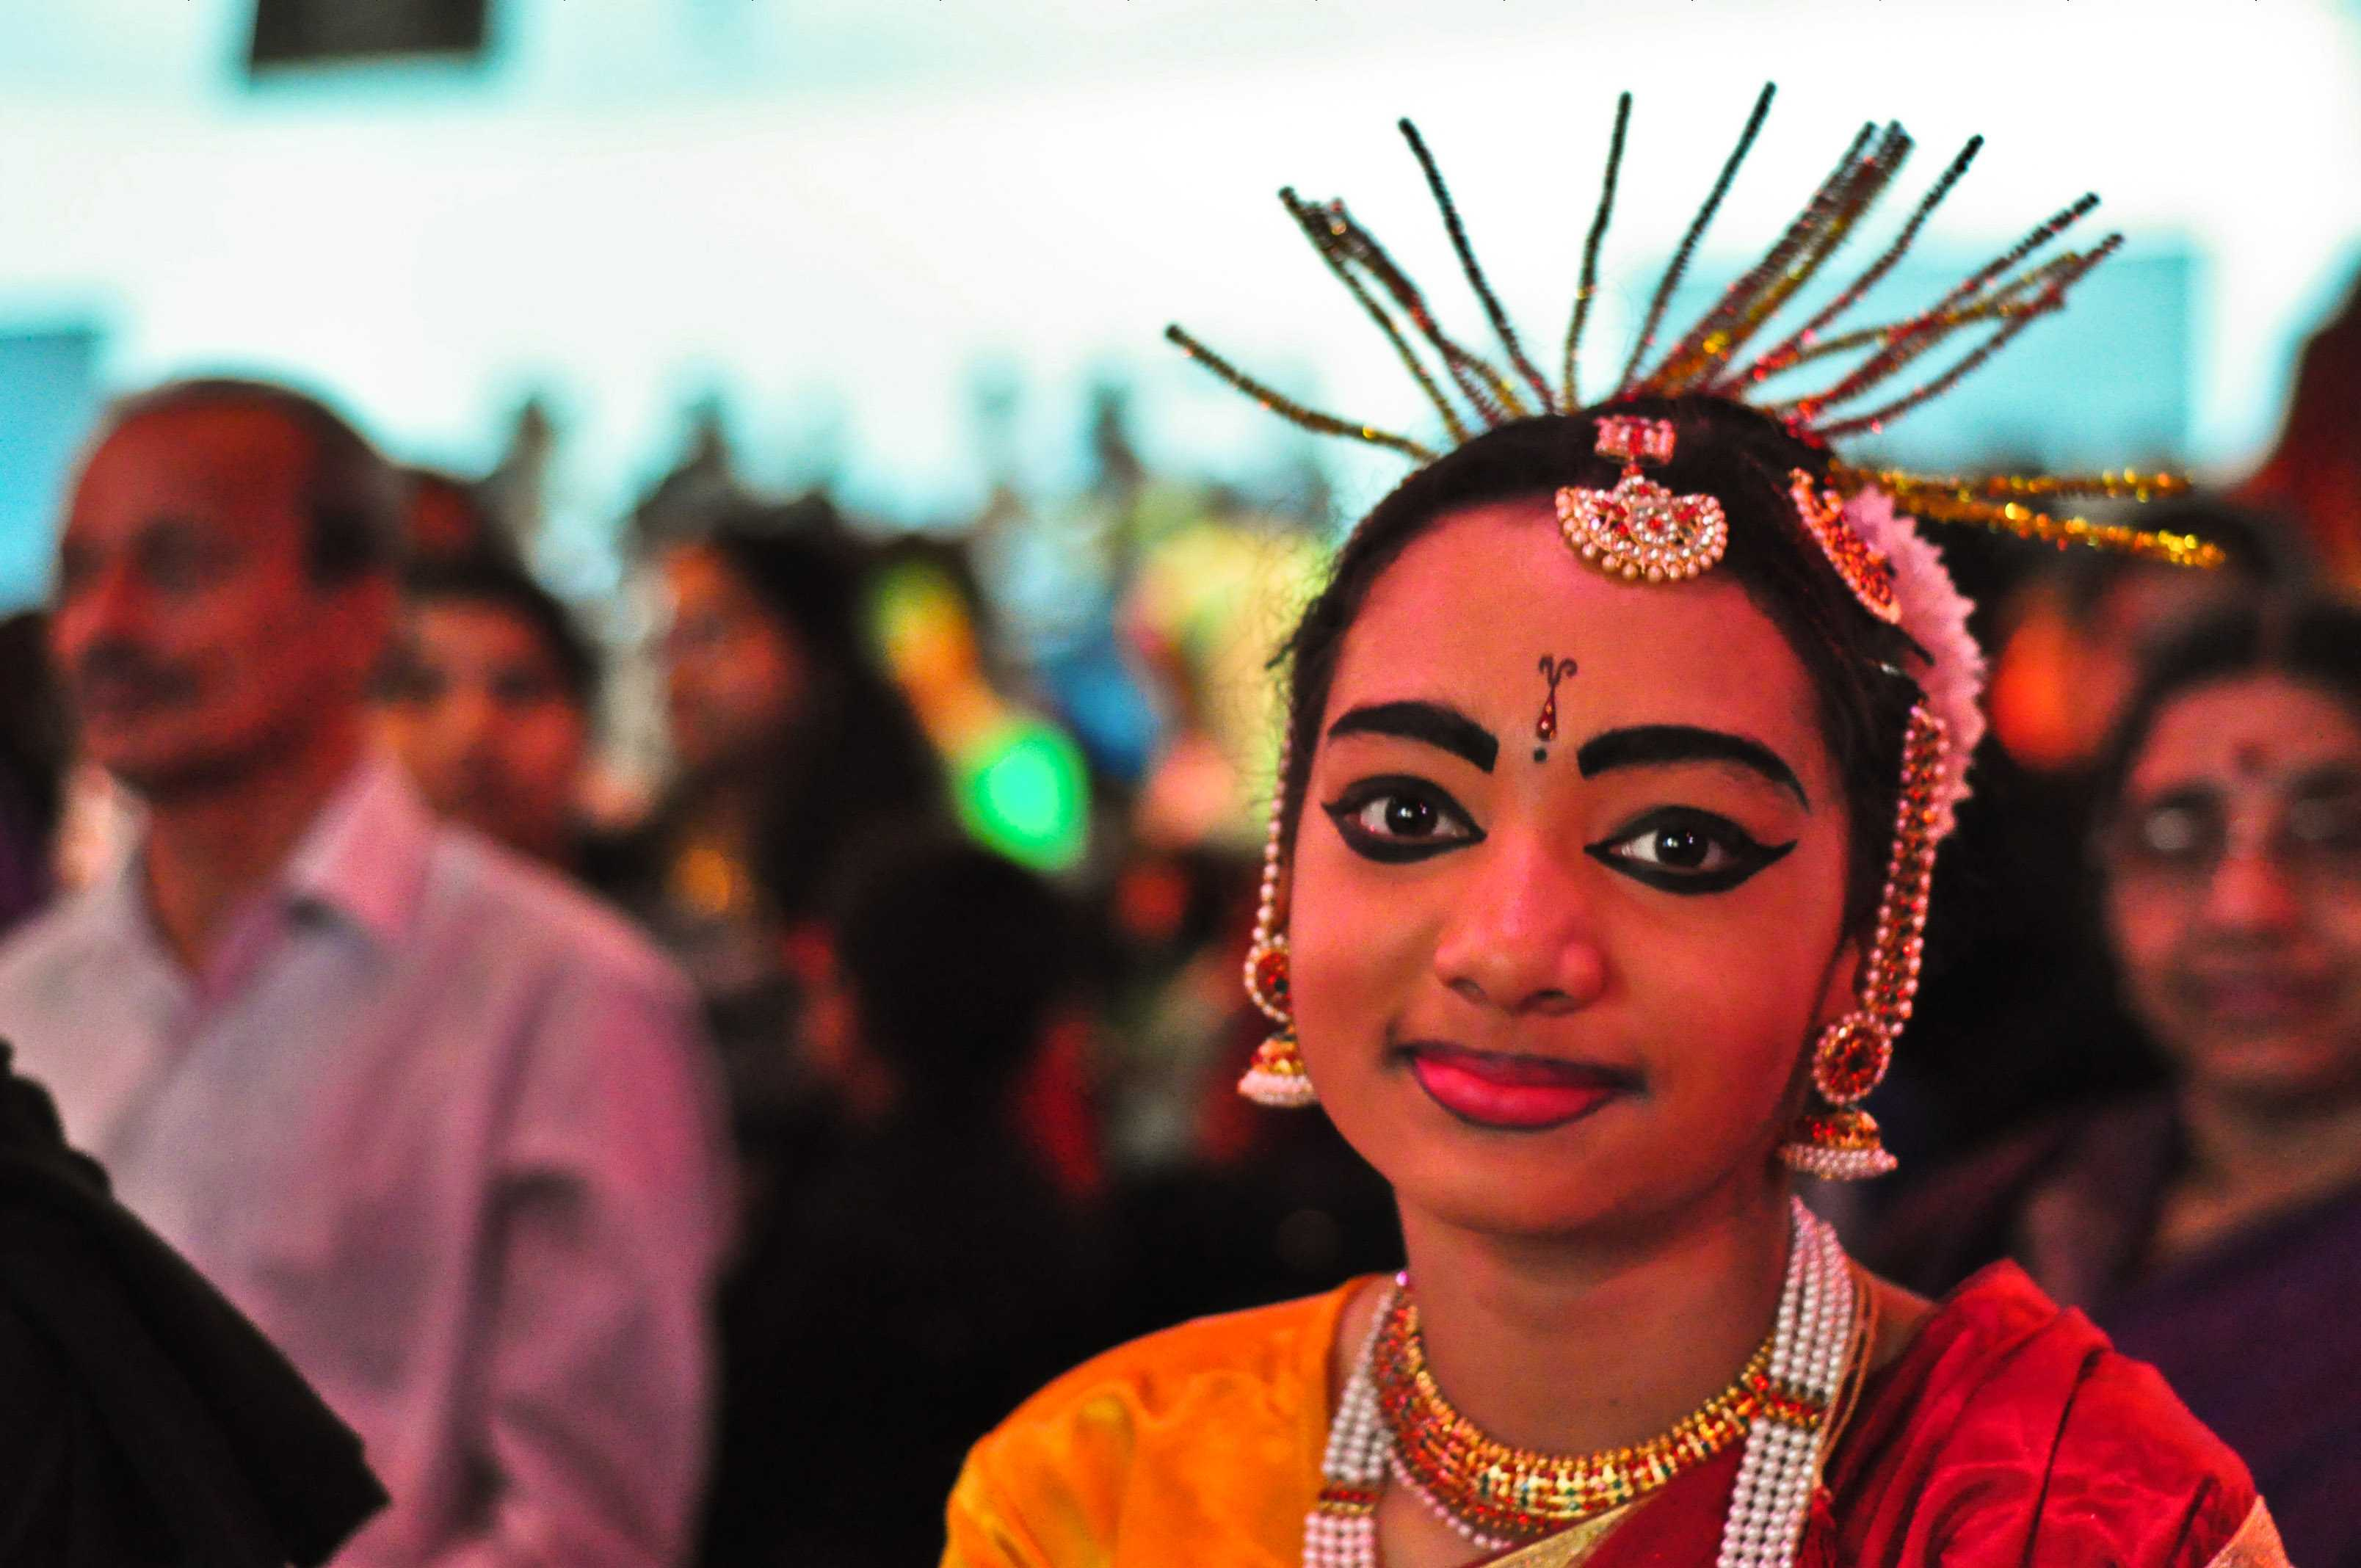 VCUQ celebrates South Asian culture  The Daily Q